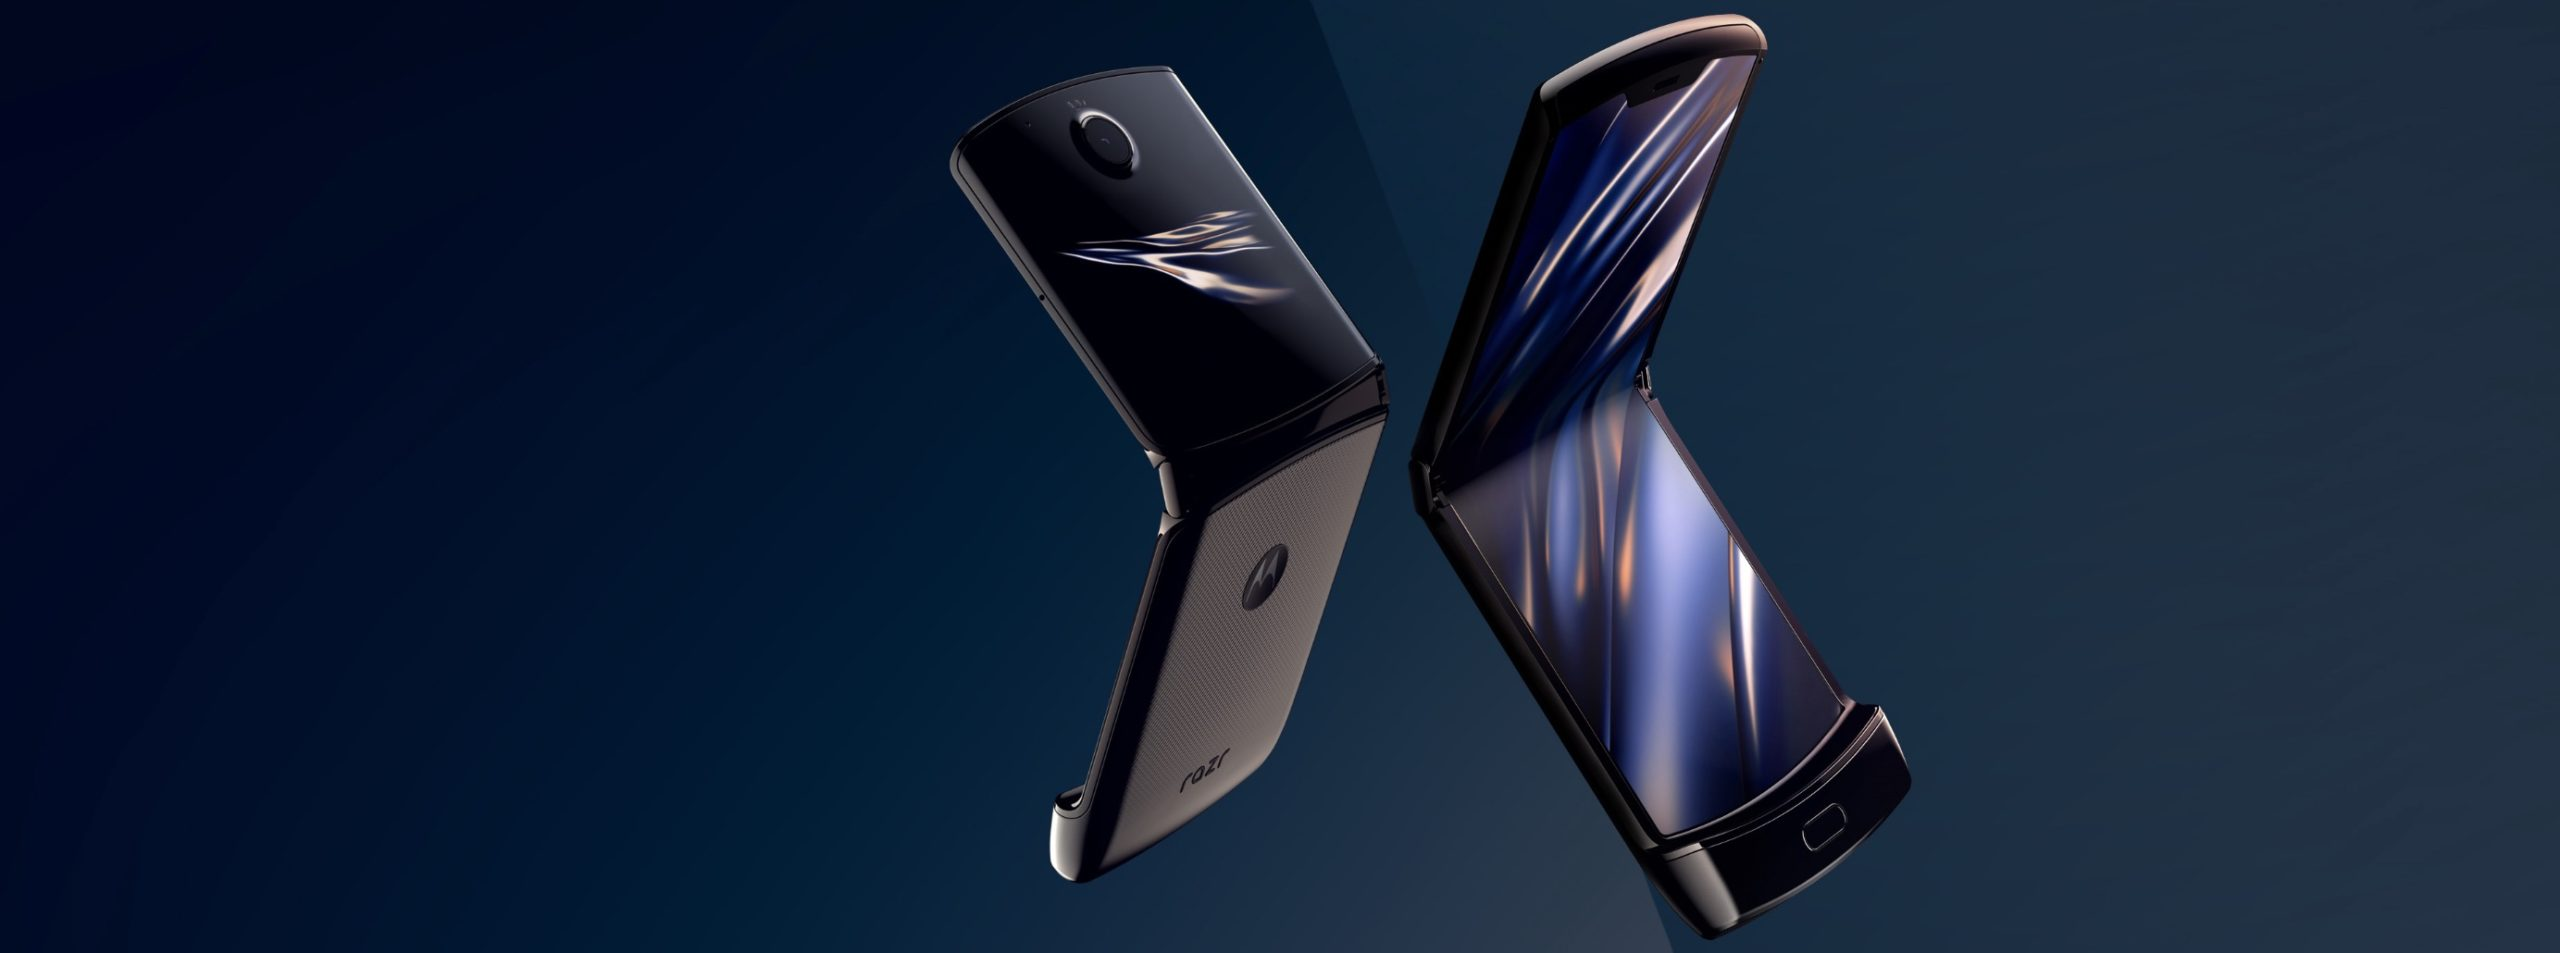 Is Motorola's New Foldable Razr Phone Any Good? Here's What The Reviews Say